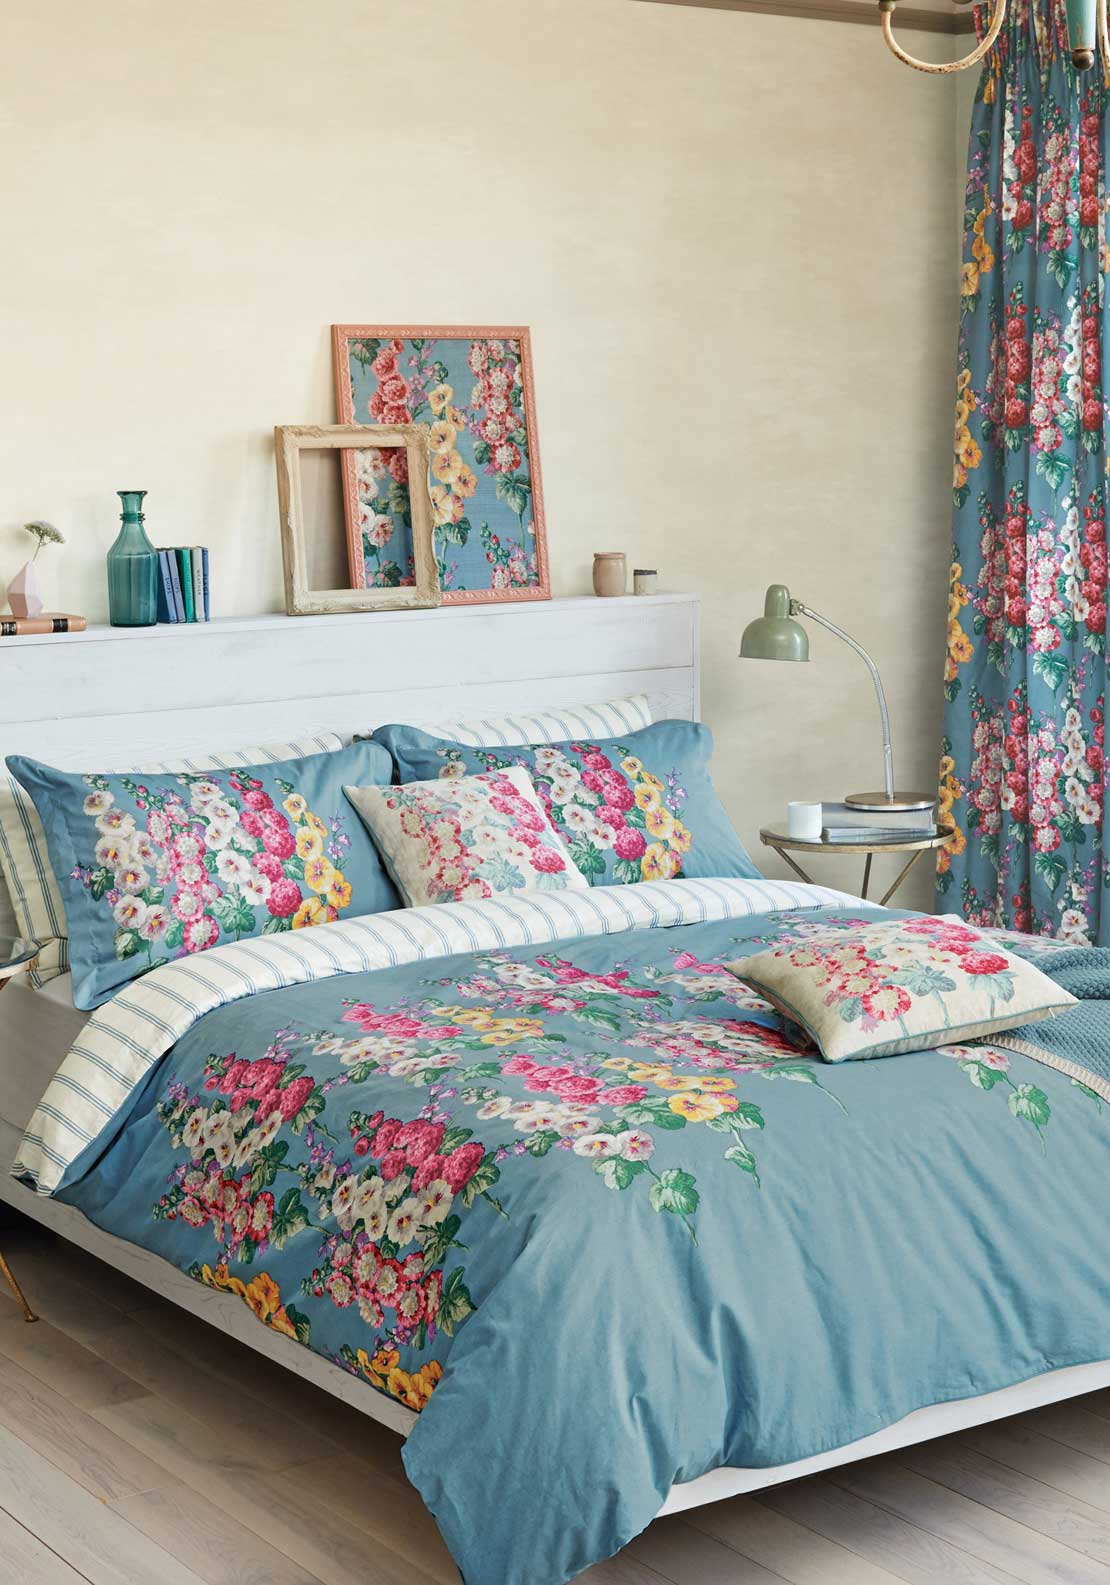 Sanderson Hollyhocks Duvet Cover, Blue with Multi Floral Print